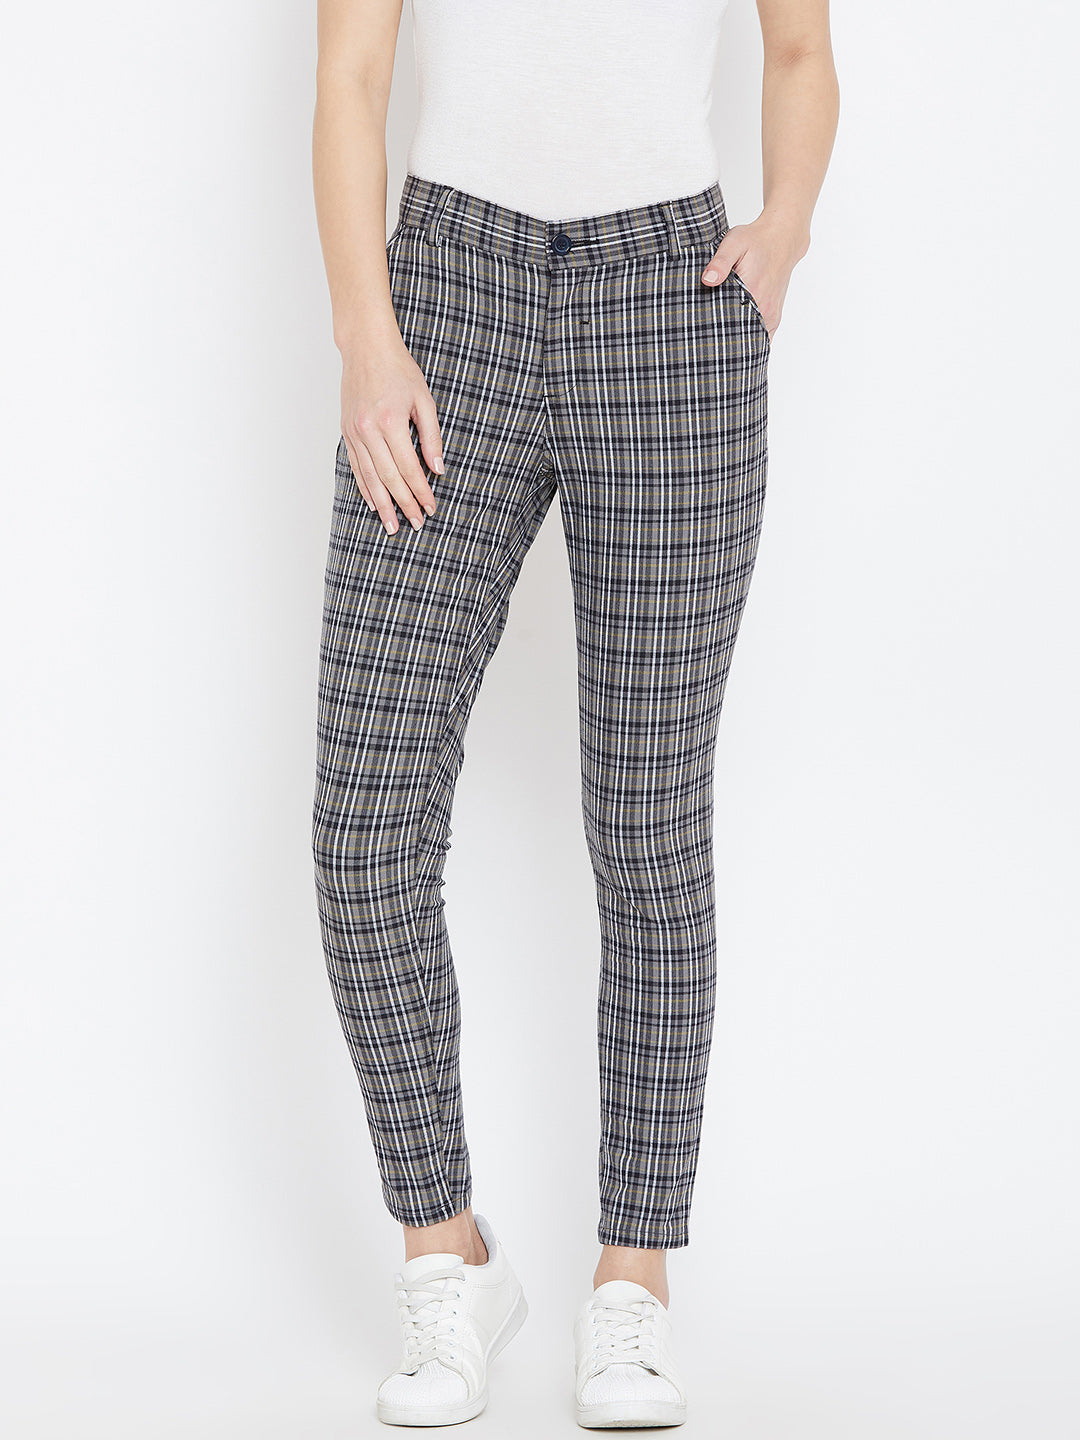 Women Grey Checked Casual Trousers - JUMP USA